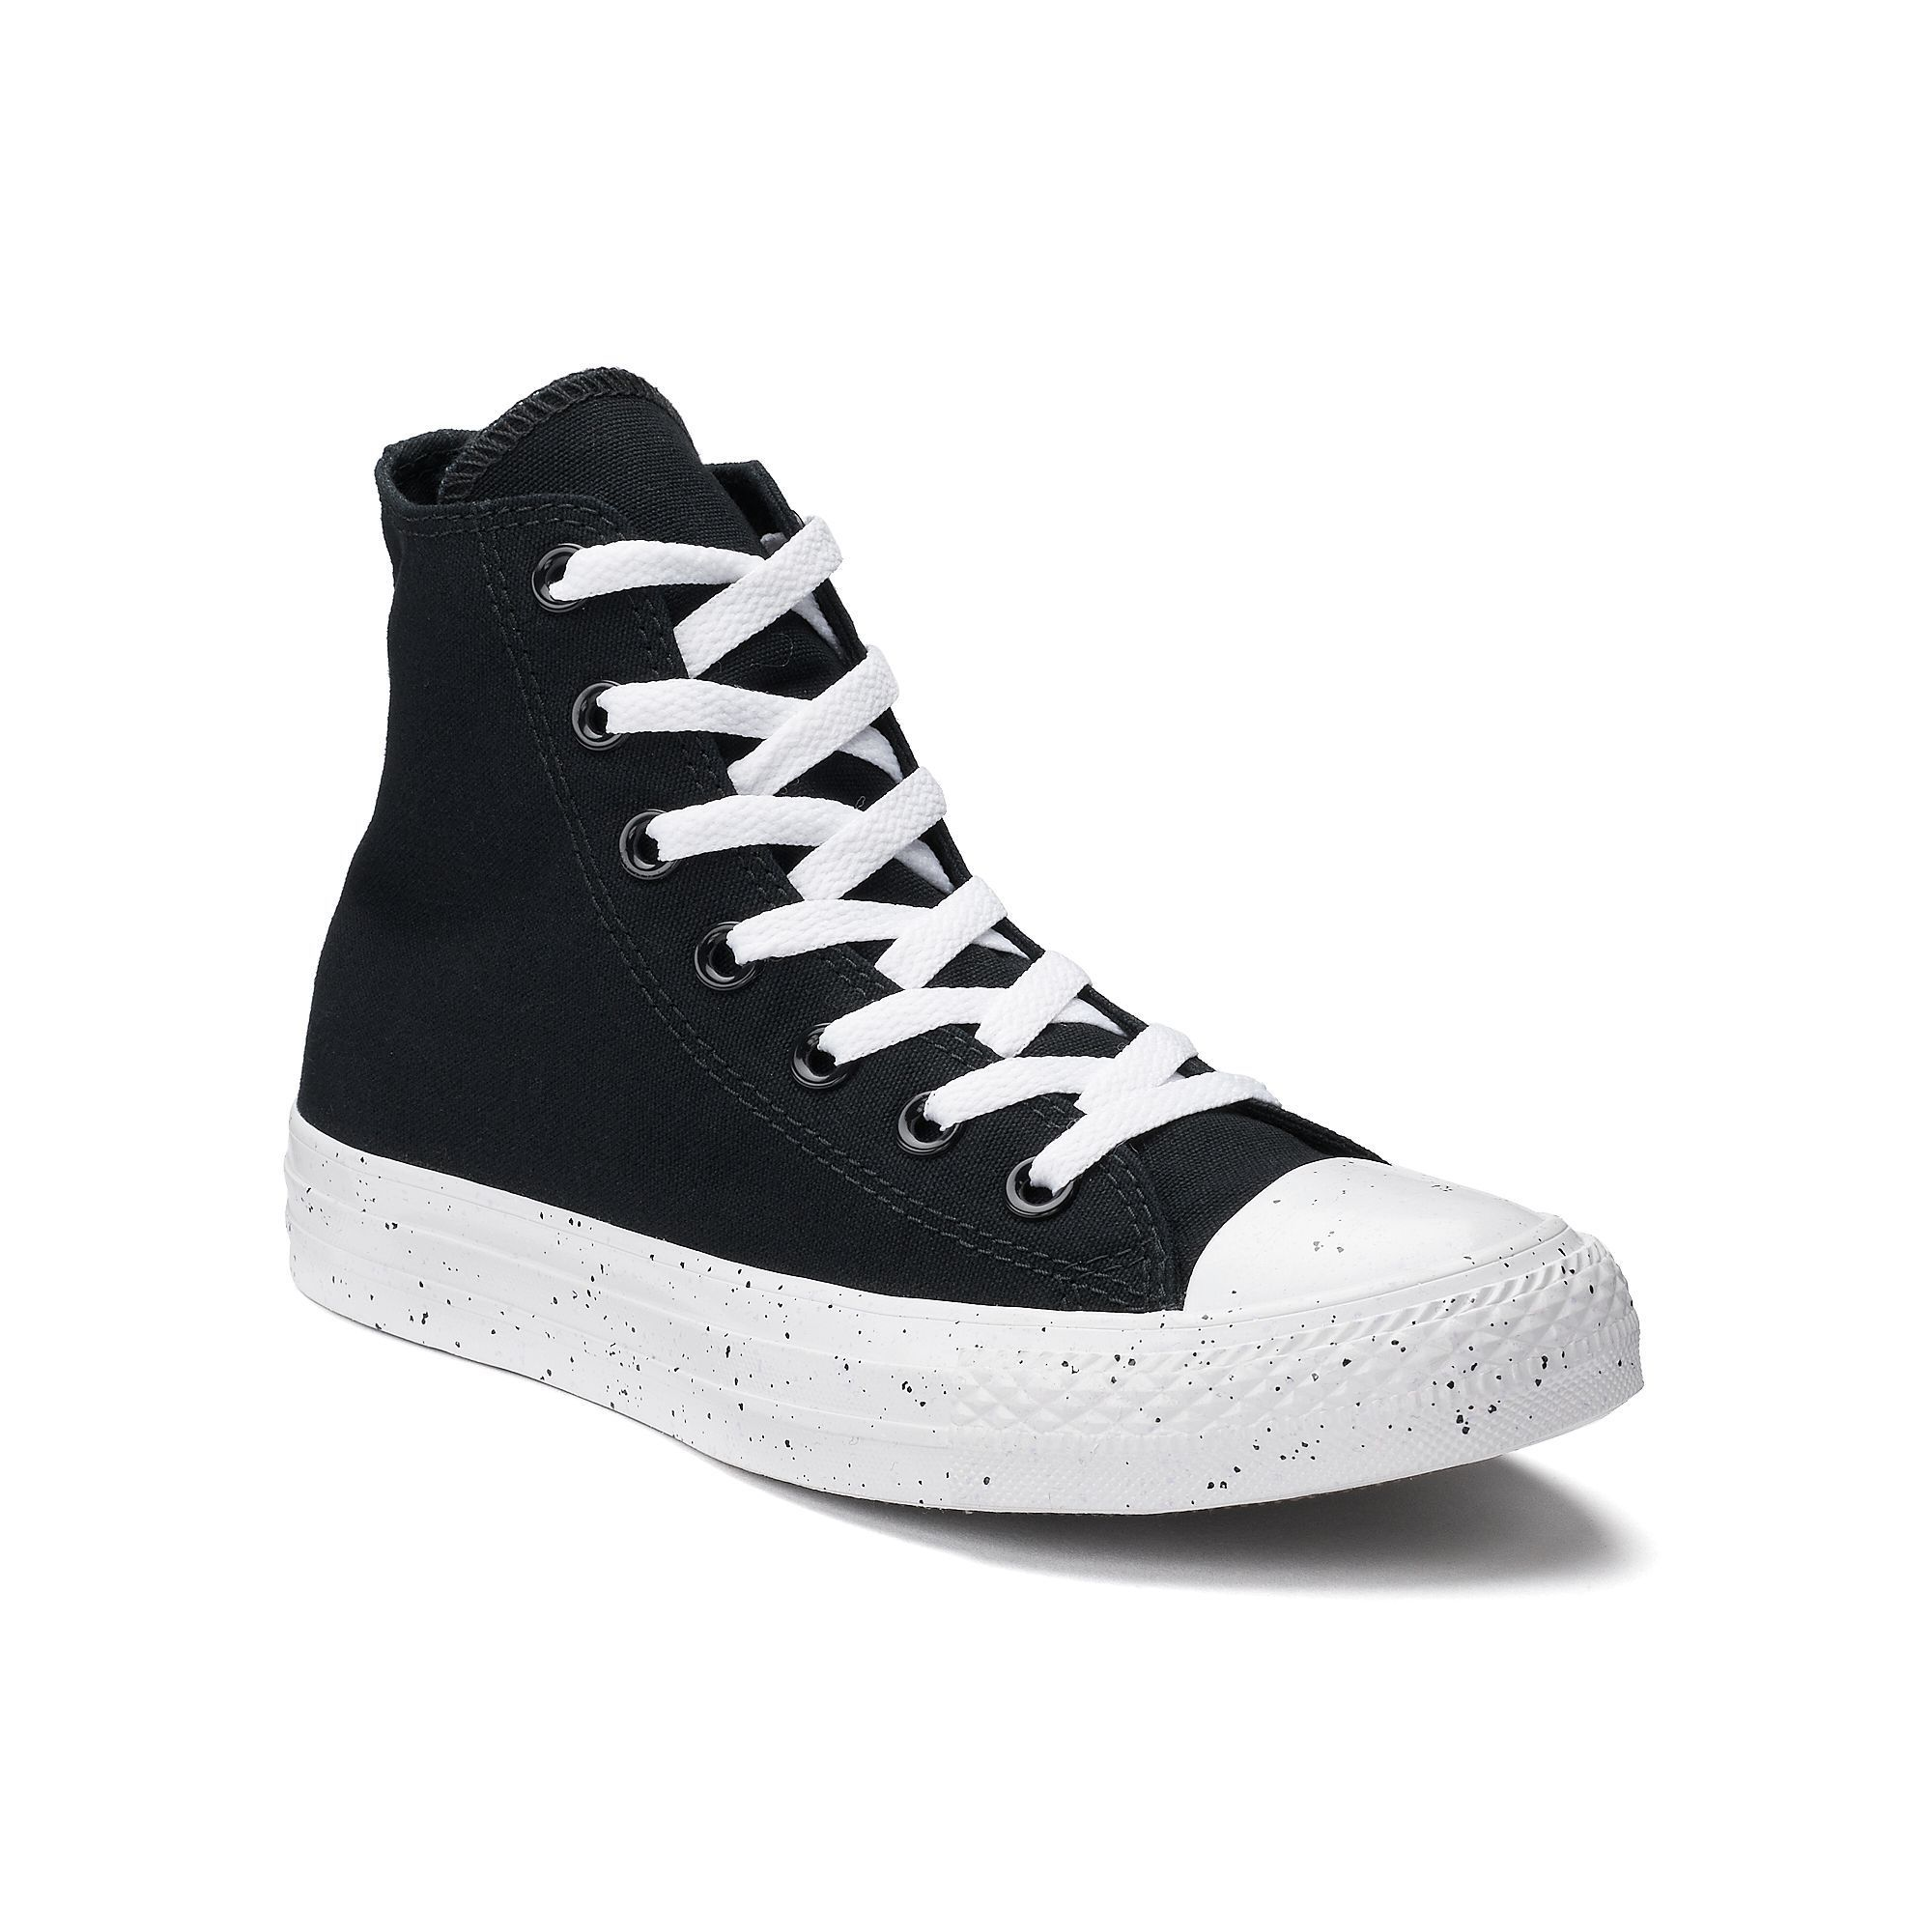 Women's Converse Chuck Taylor All Star Speckled High Top